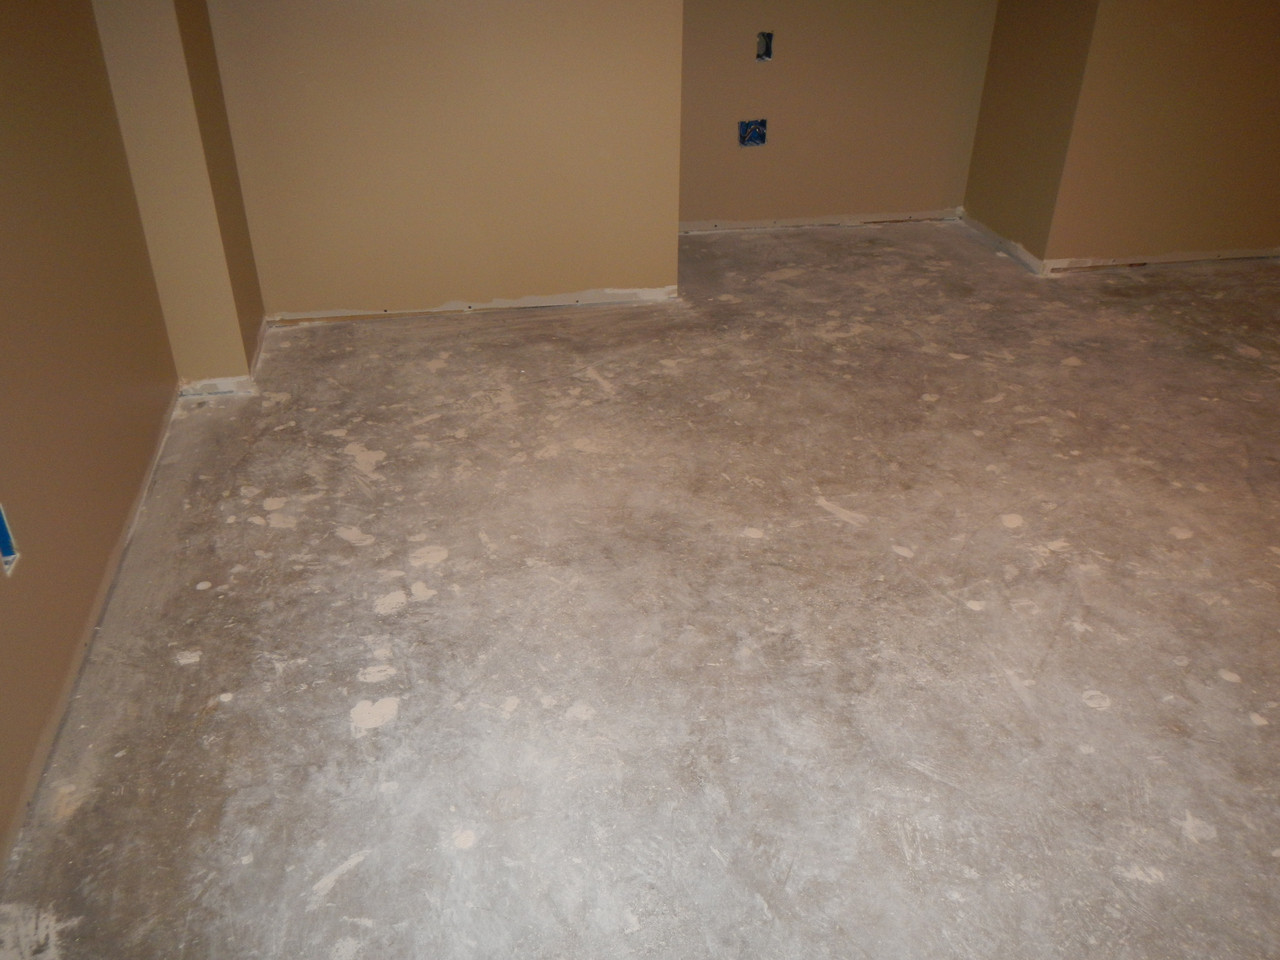 SealGreen Color Stain primer Cleaner cleans drywall mud stains, and conditions the floor for a color stain application